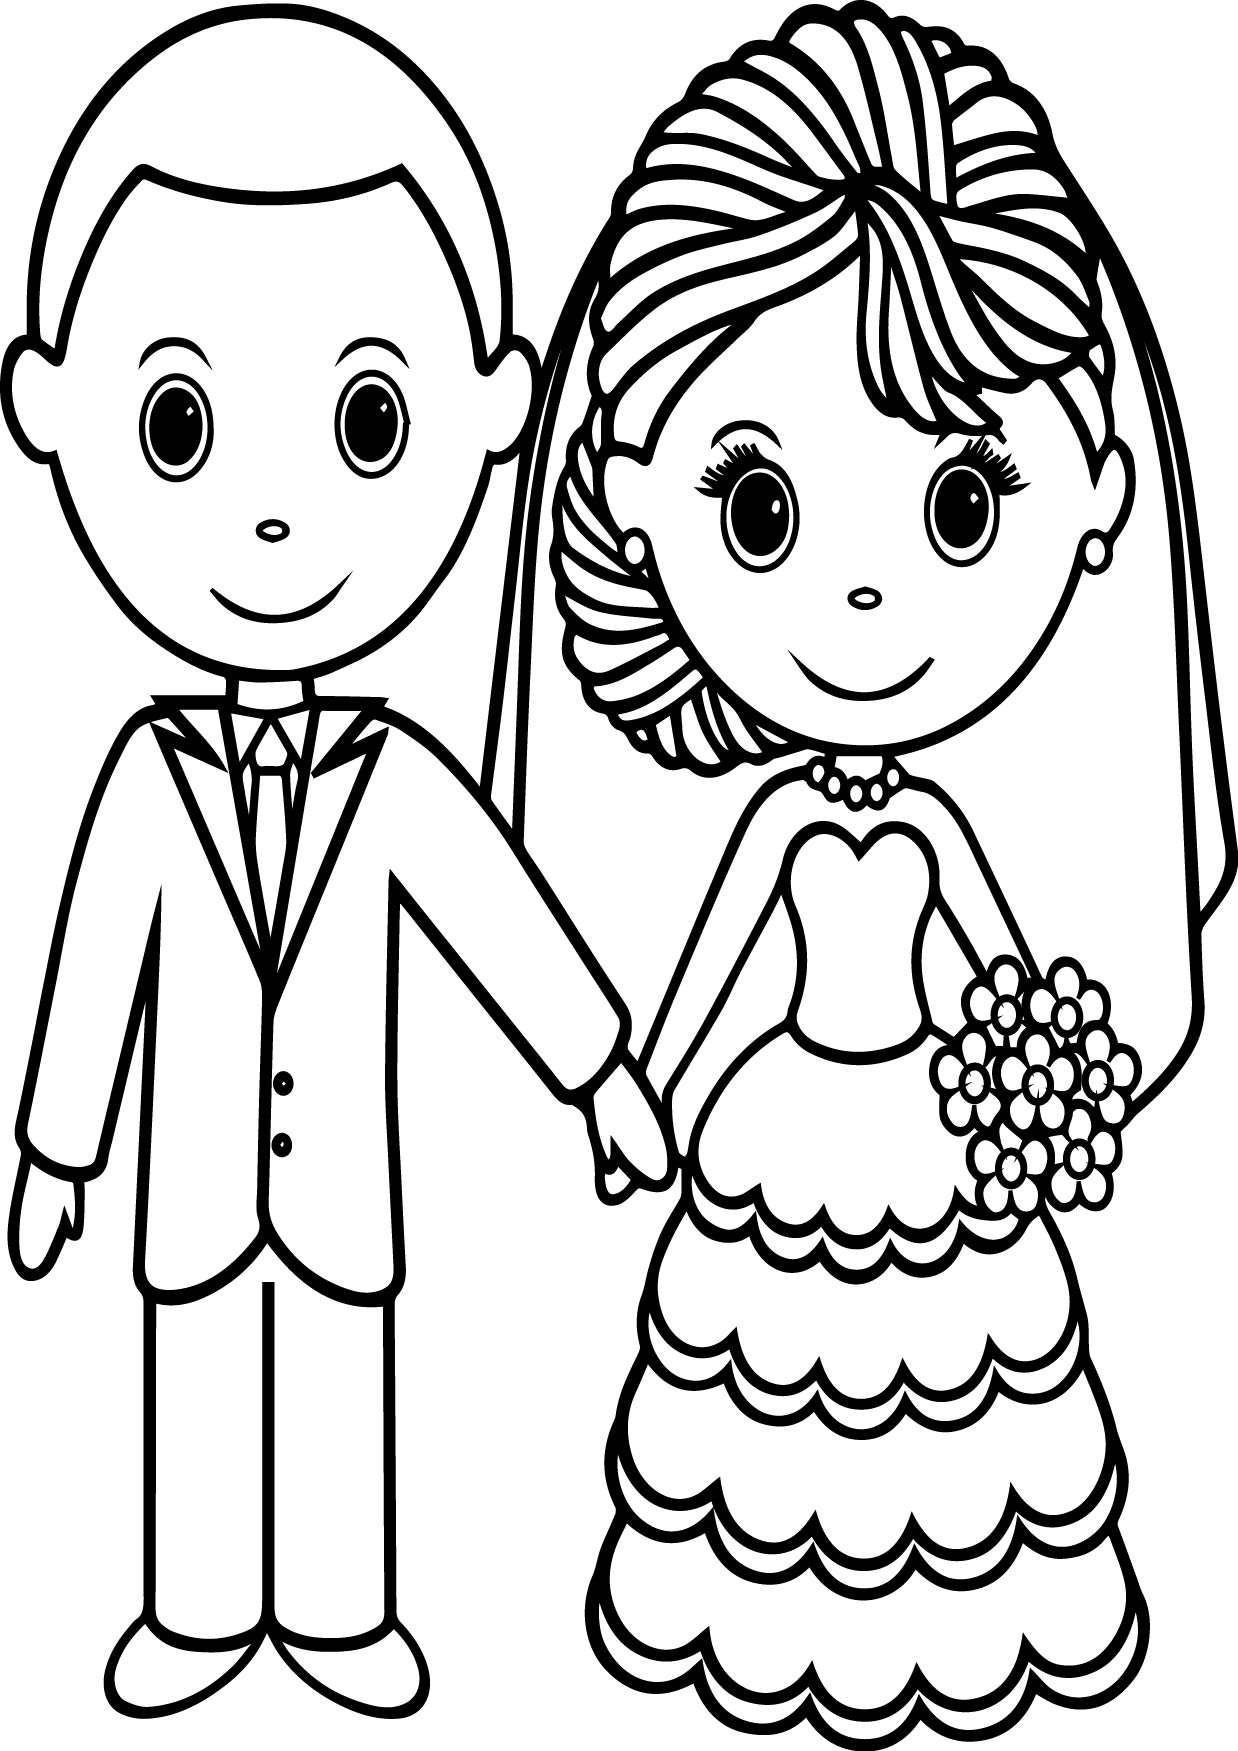 bride-and-groom-coloring-pages-3